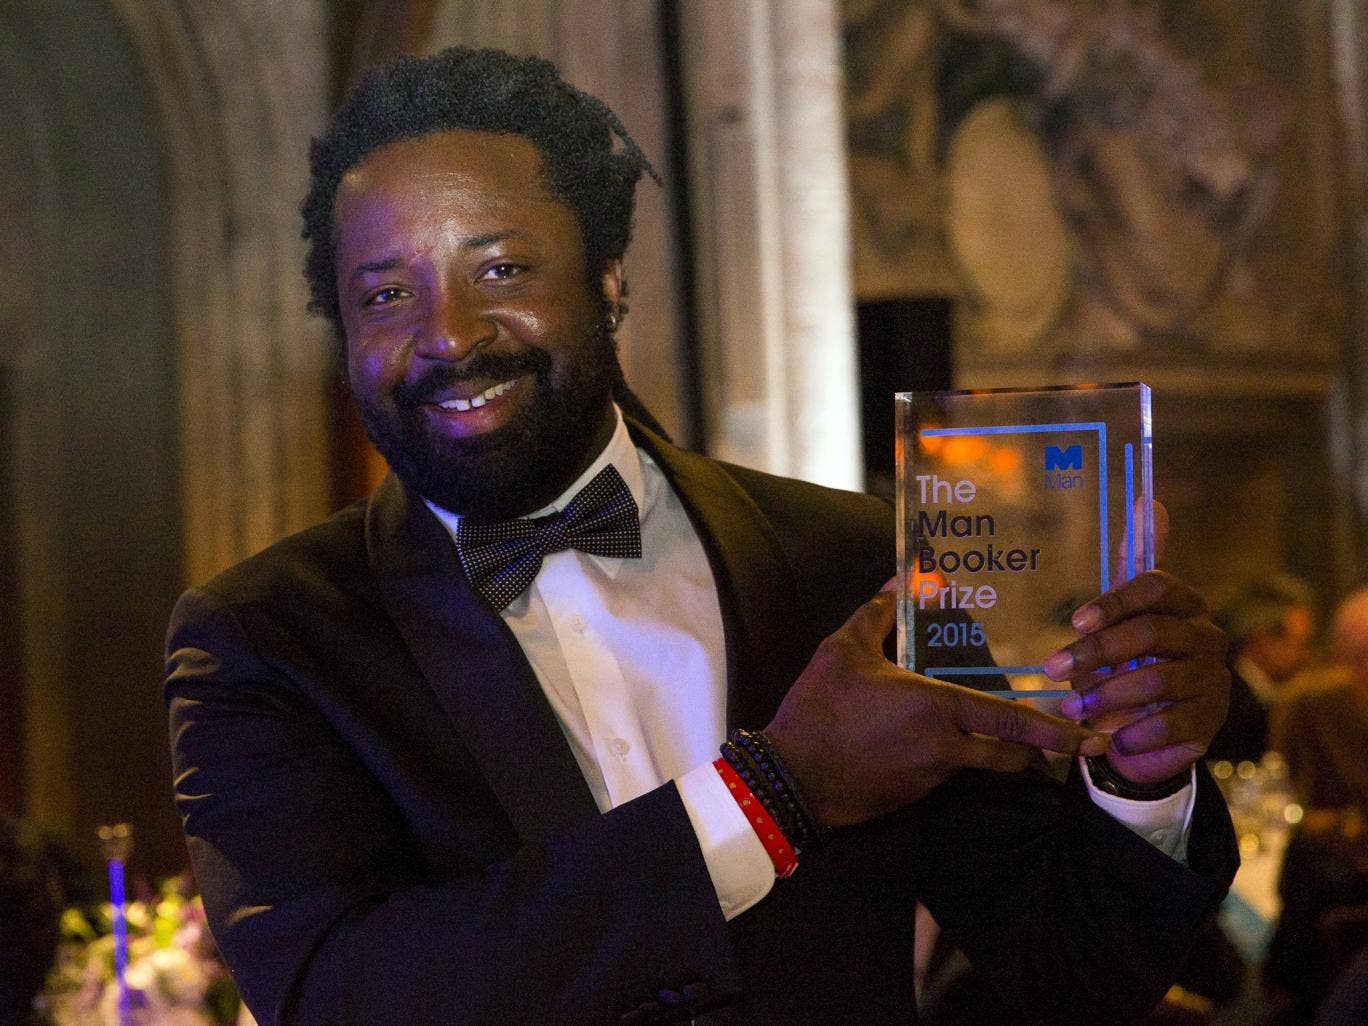 Award at the ceremony for the man booker prize for fiction 2015 at the